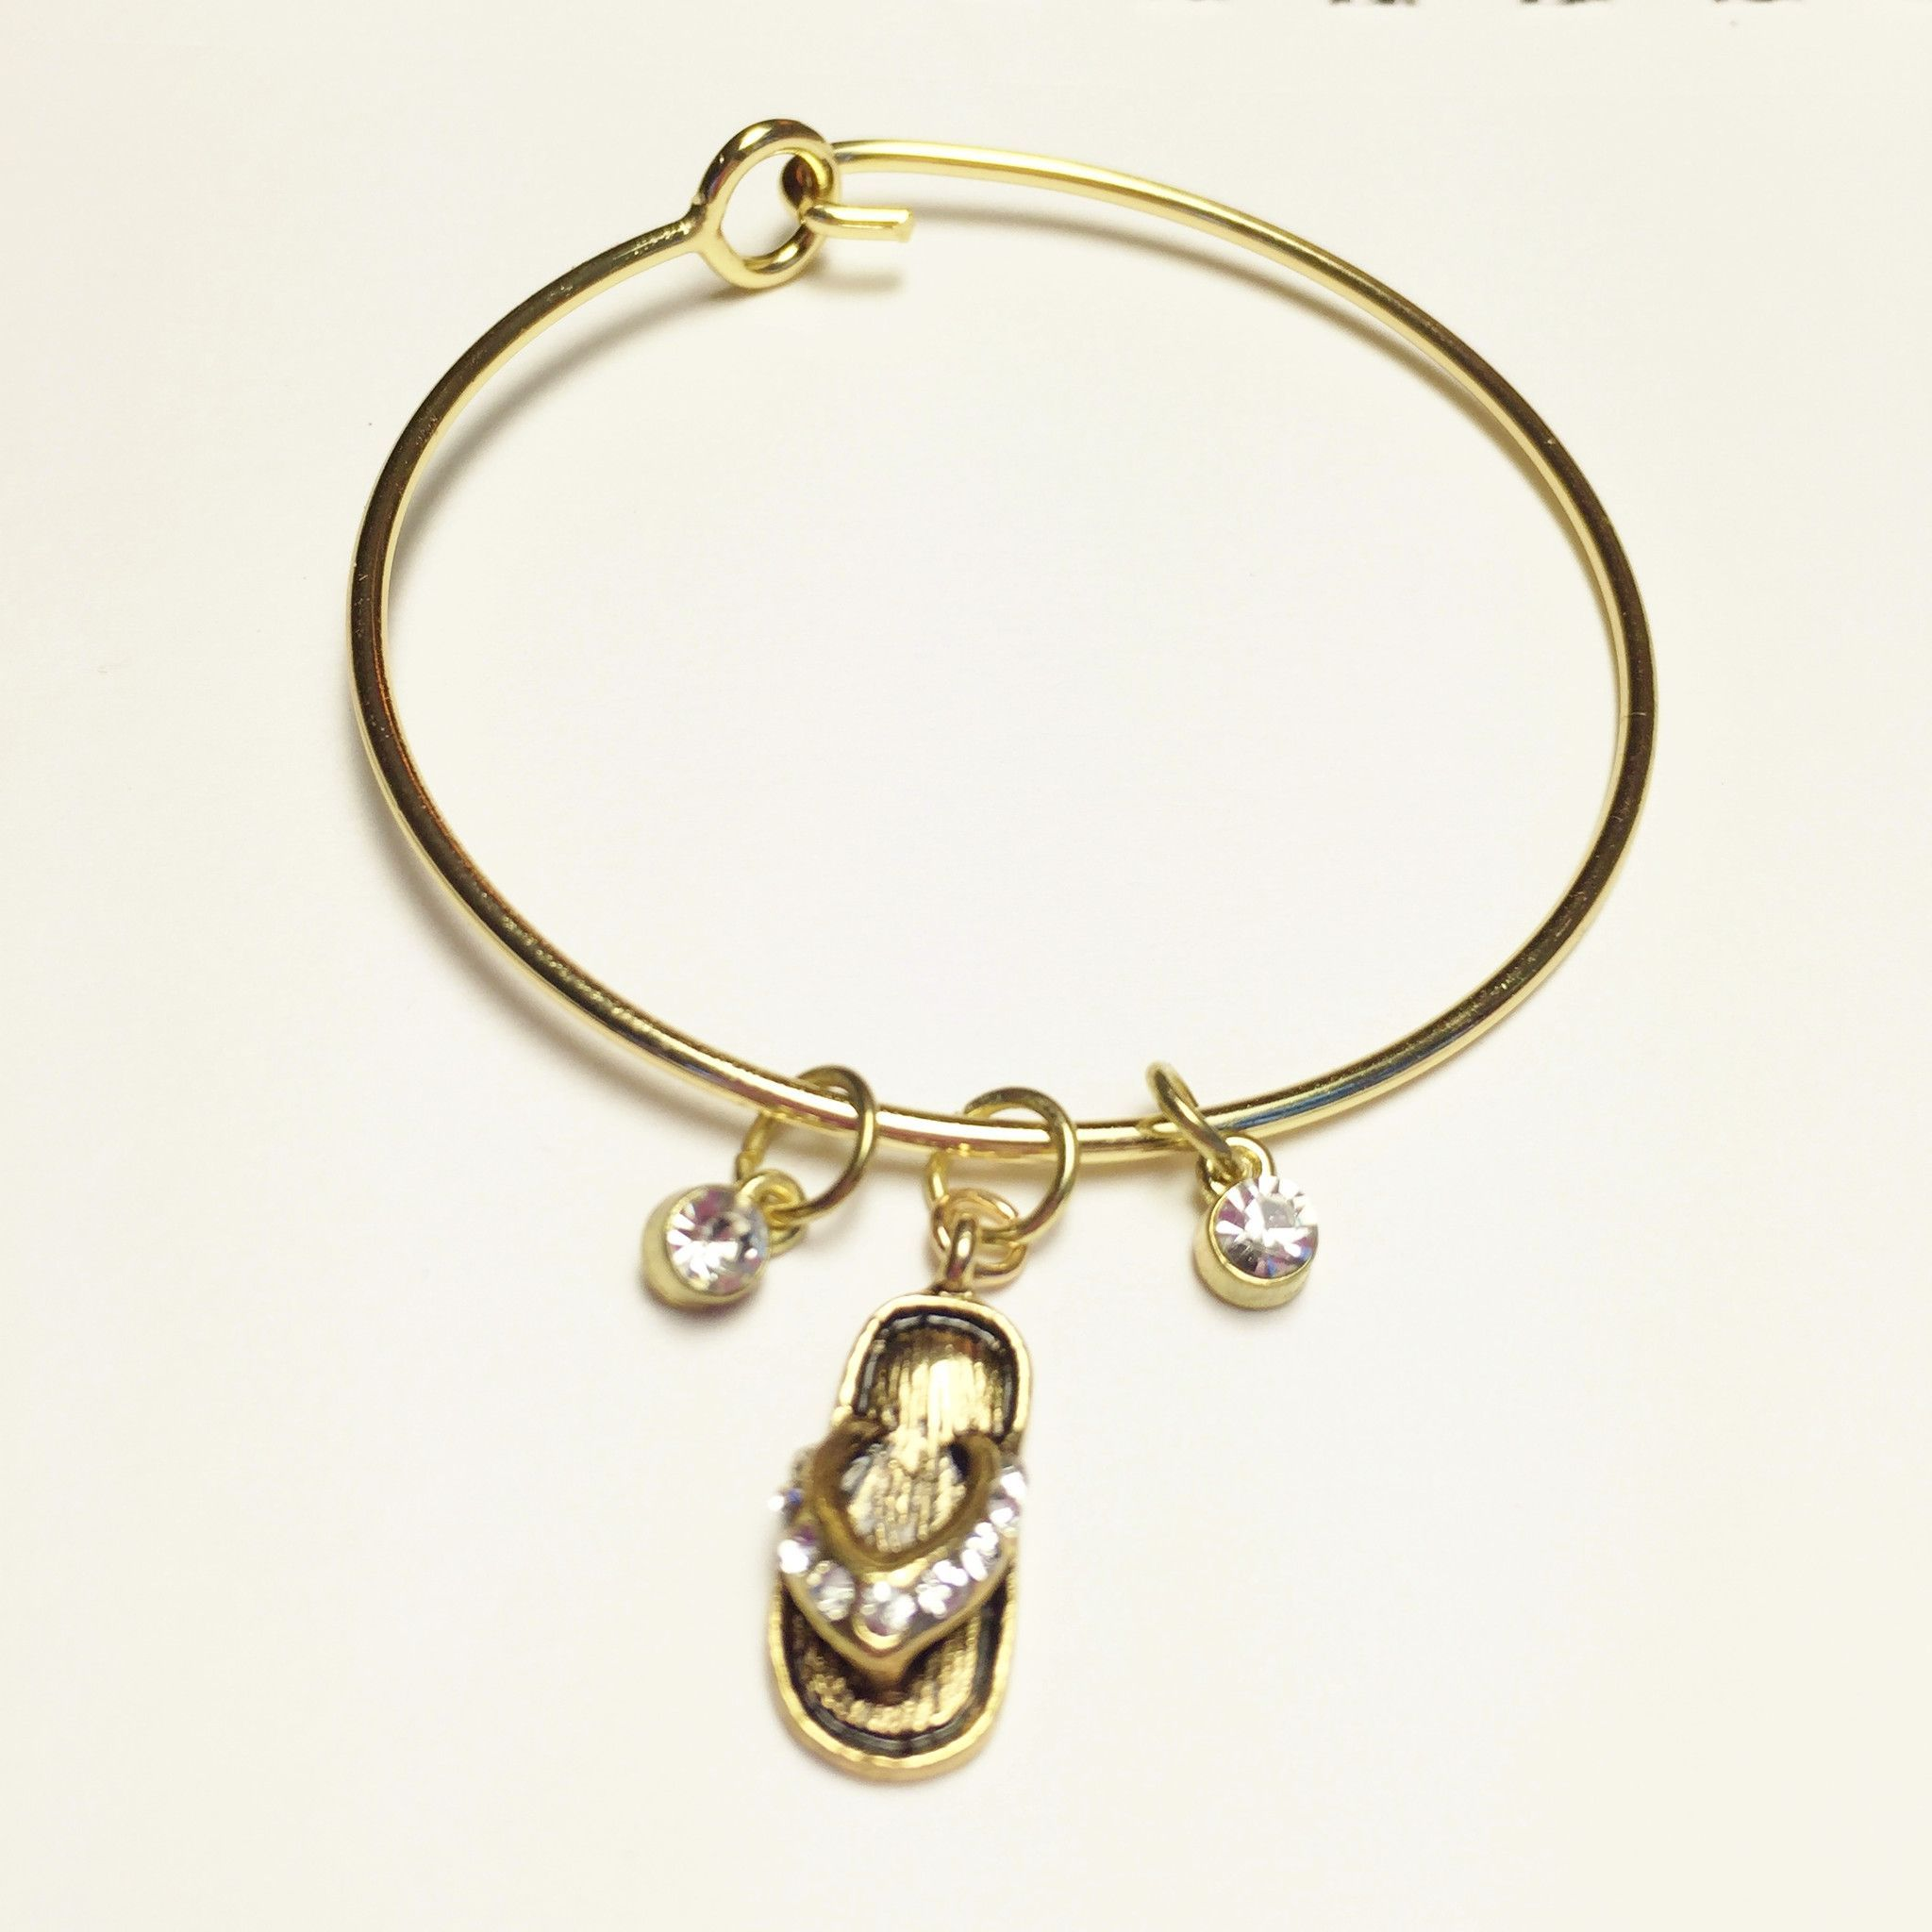 charms charm bangles and designed your initials grandmothers bracelet bracelets bangle u women the in grandma blessings gold add s grandkids for